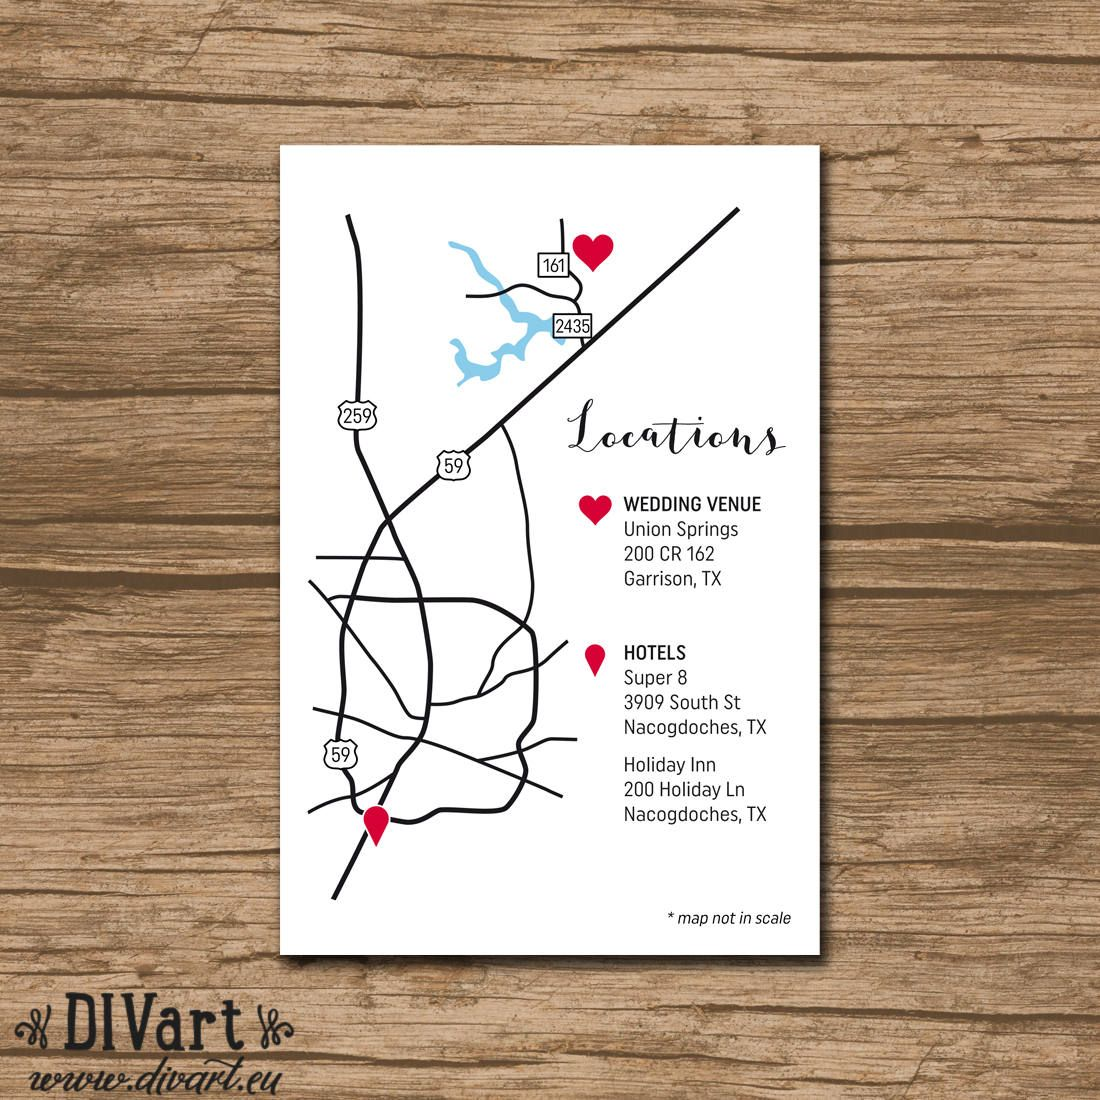 Custom Wedding Map, Event Map, Directions, Locations - PRINTABLE ...